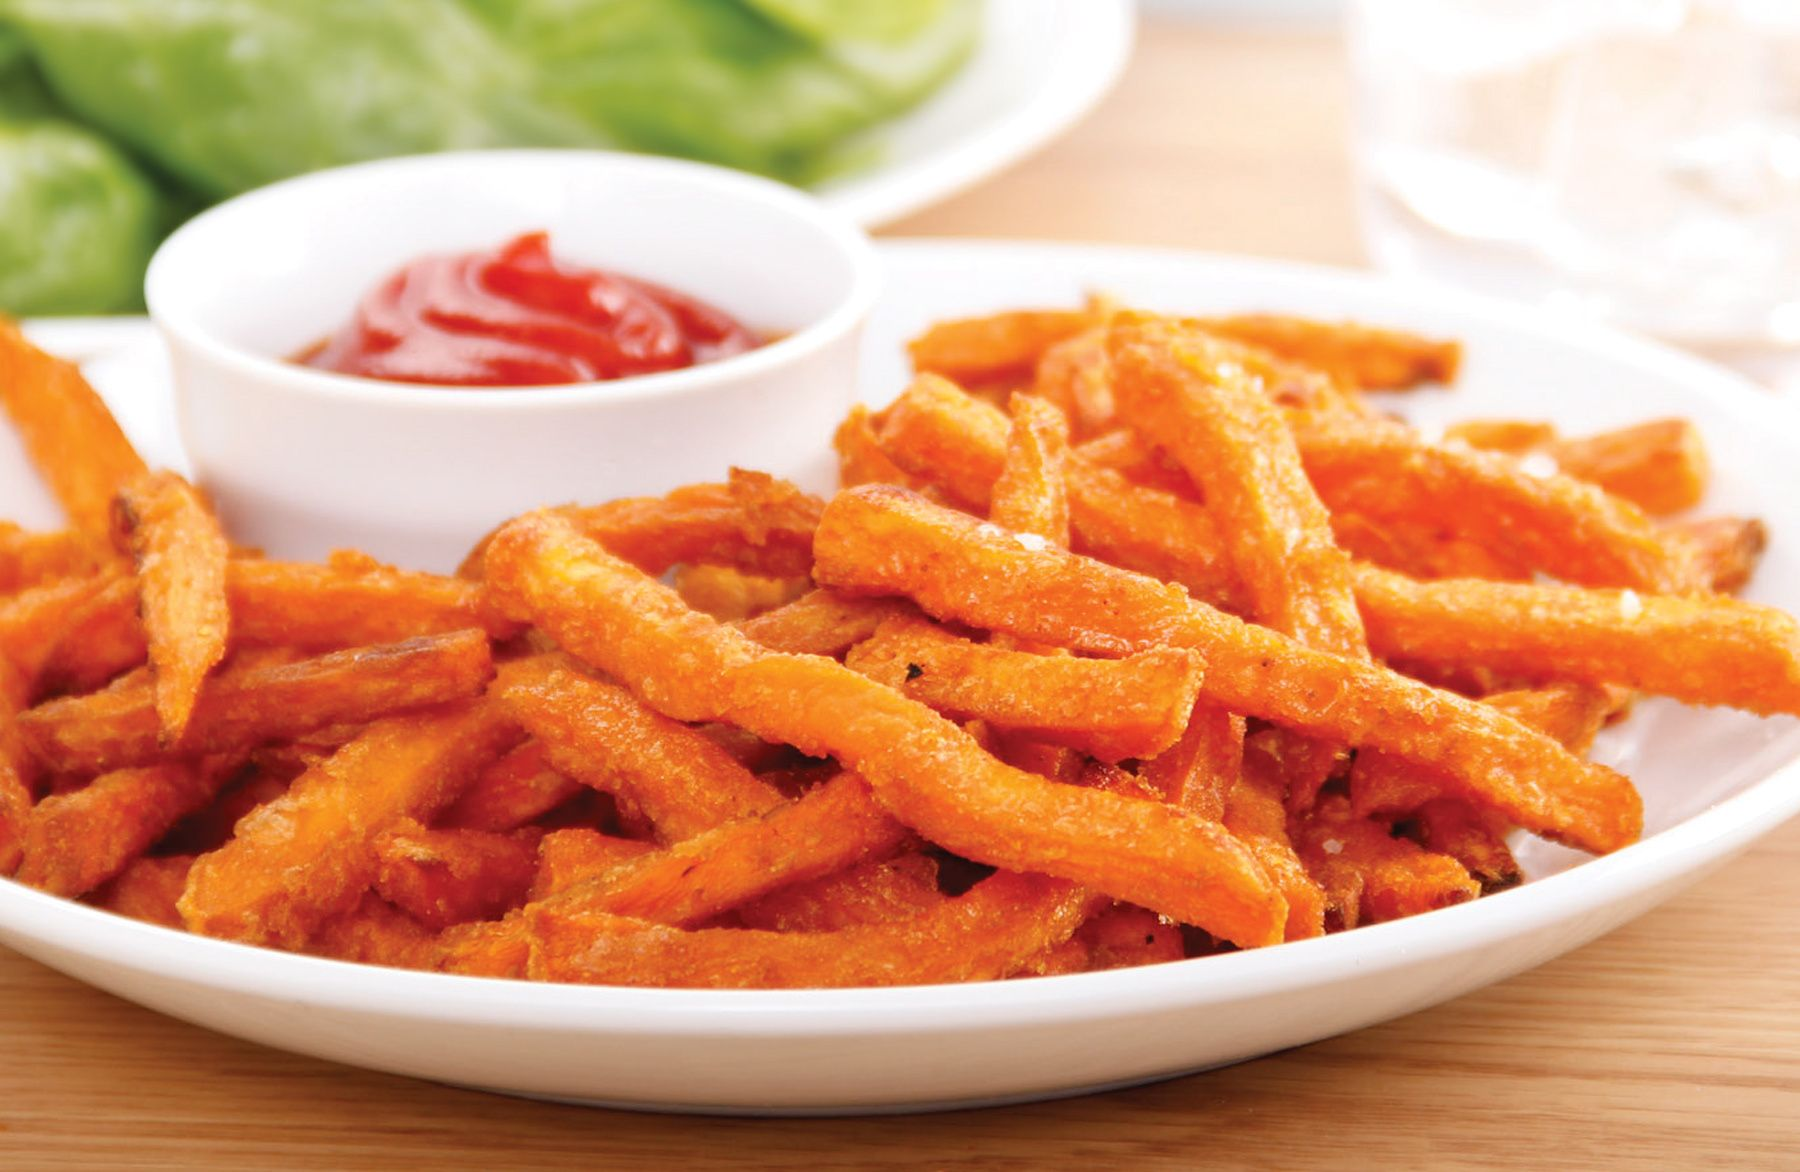 1plateofsweetpotatofries.jpg